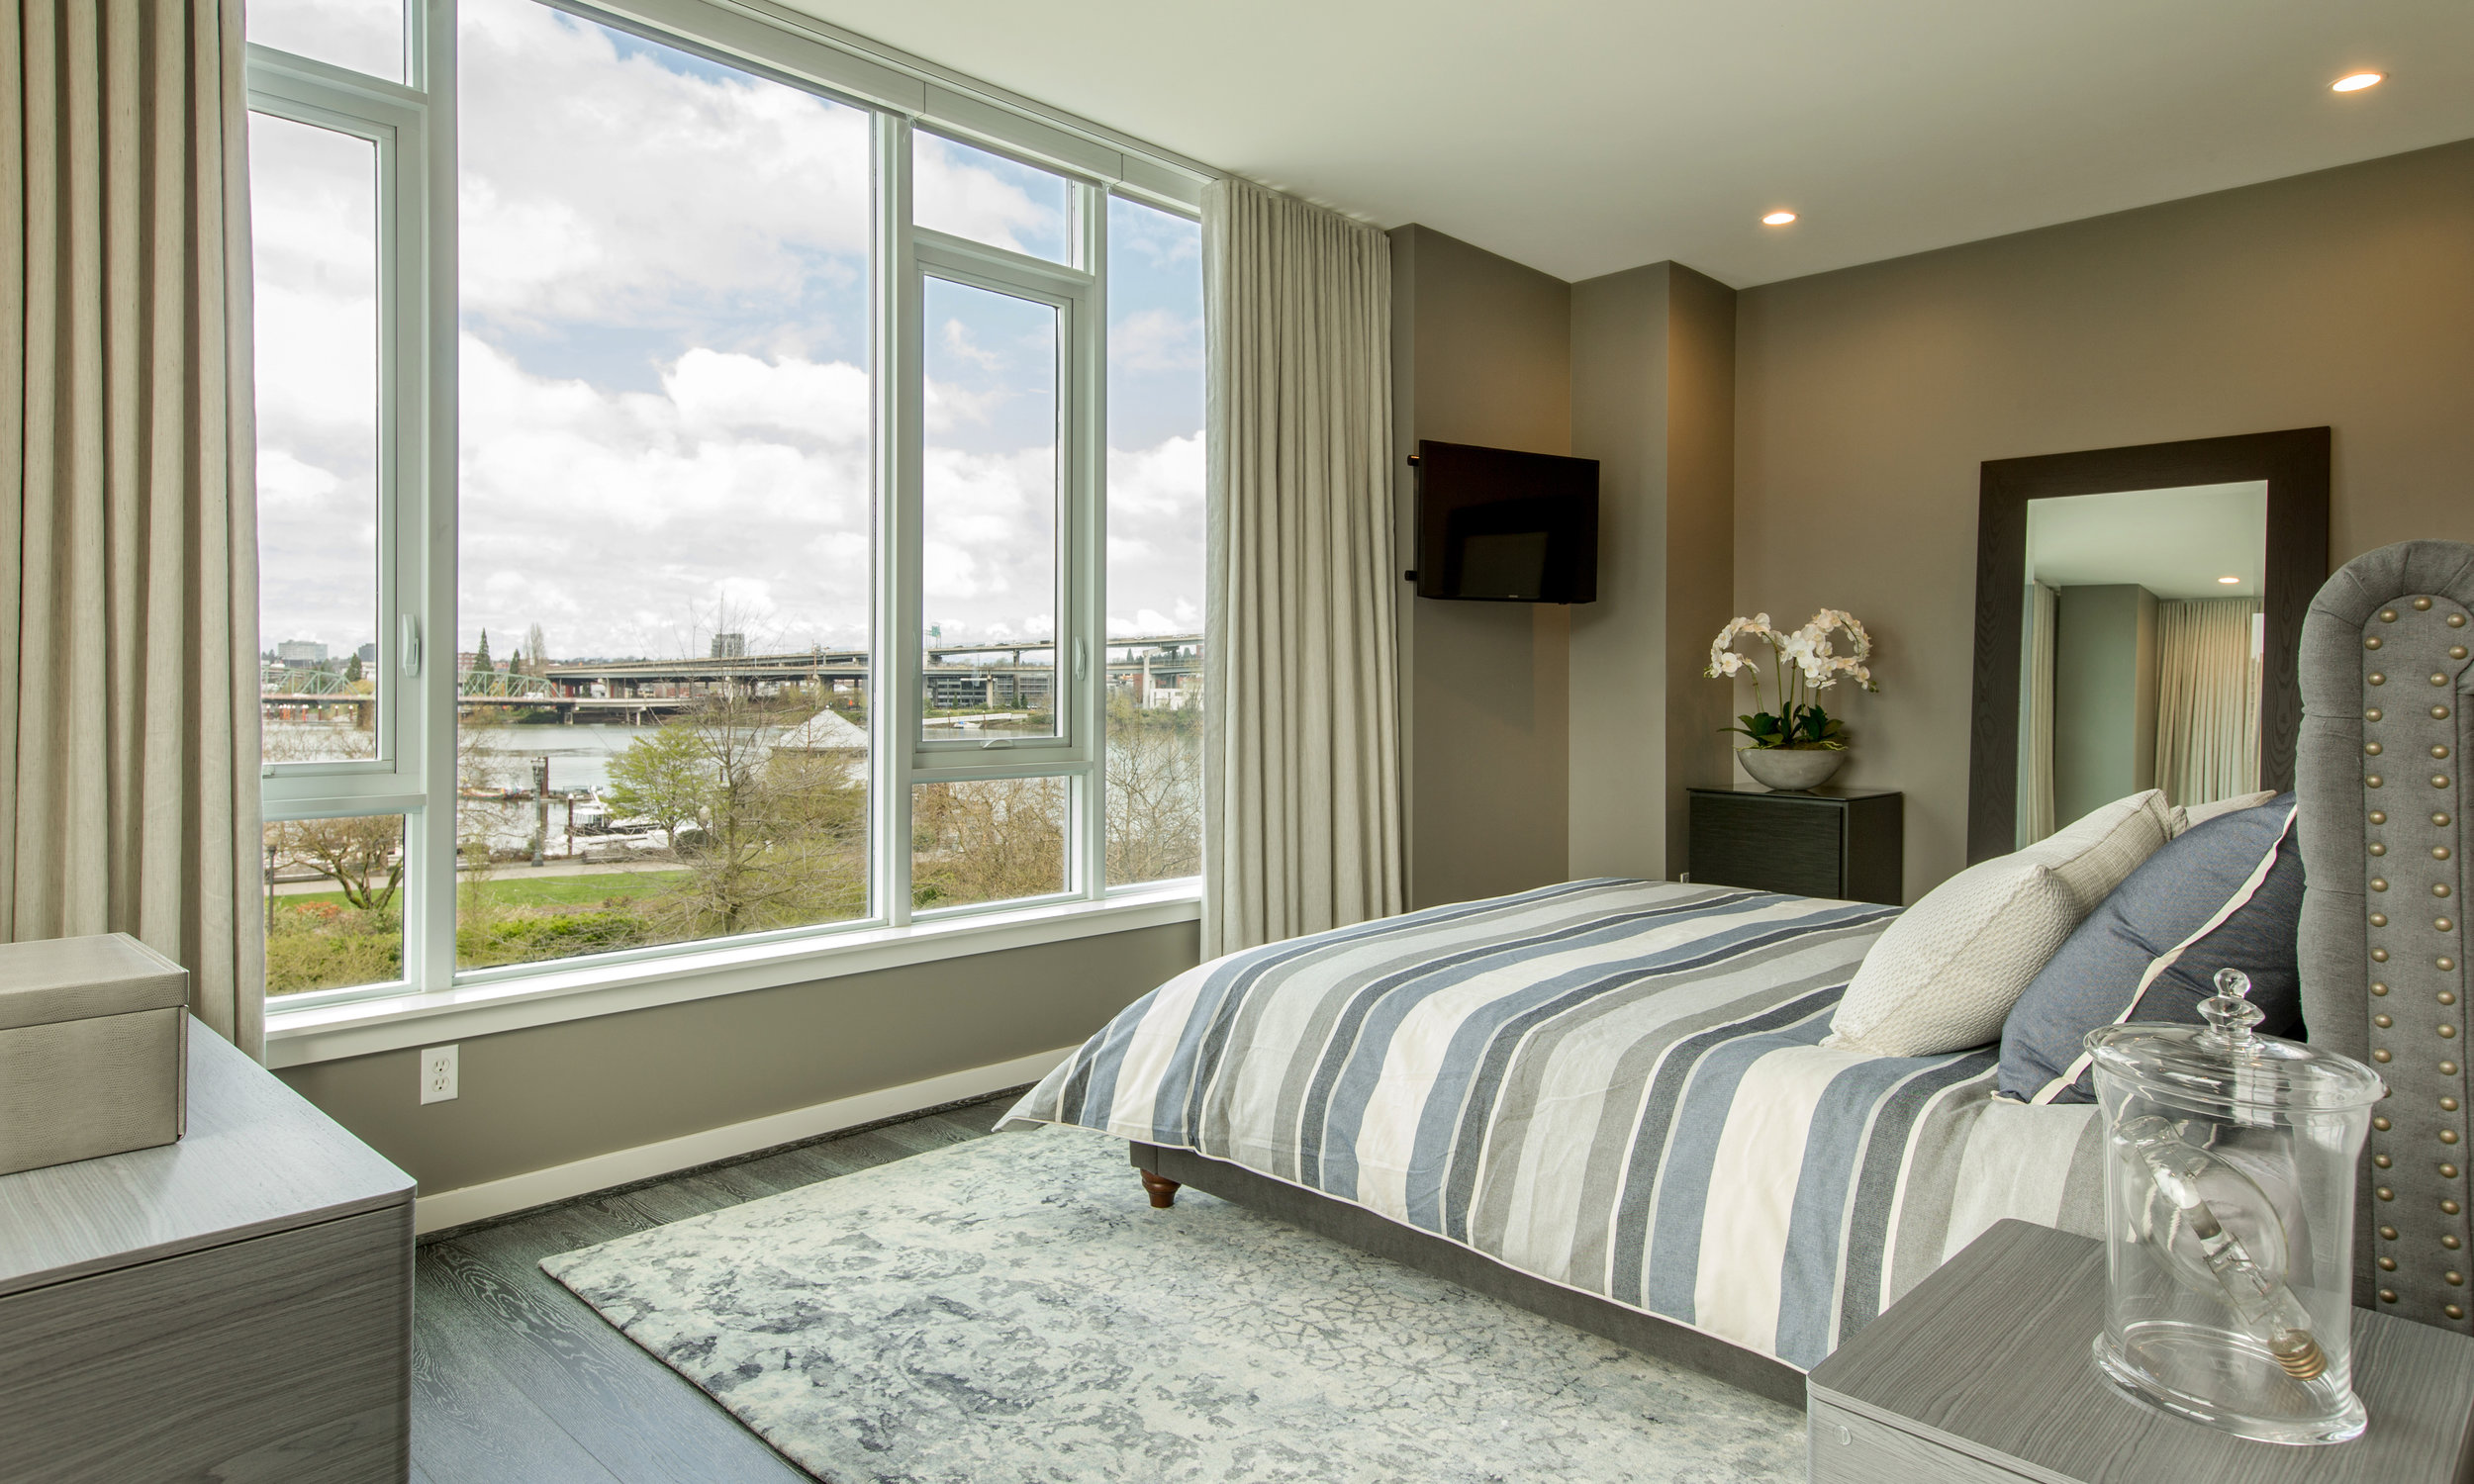 Jason-Ball-South-Waterfront-Condo-Master-Bedroom.jpg